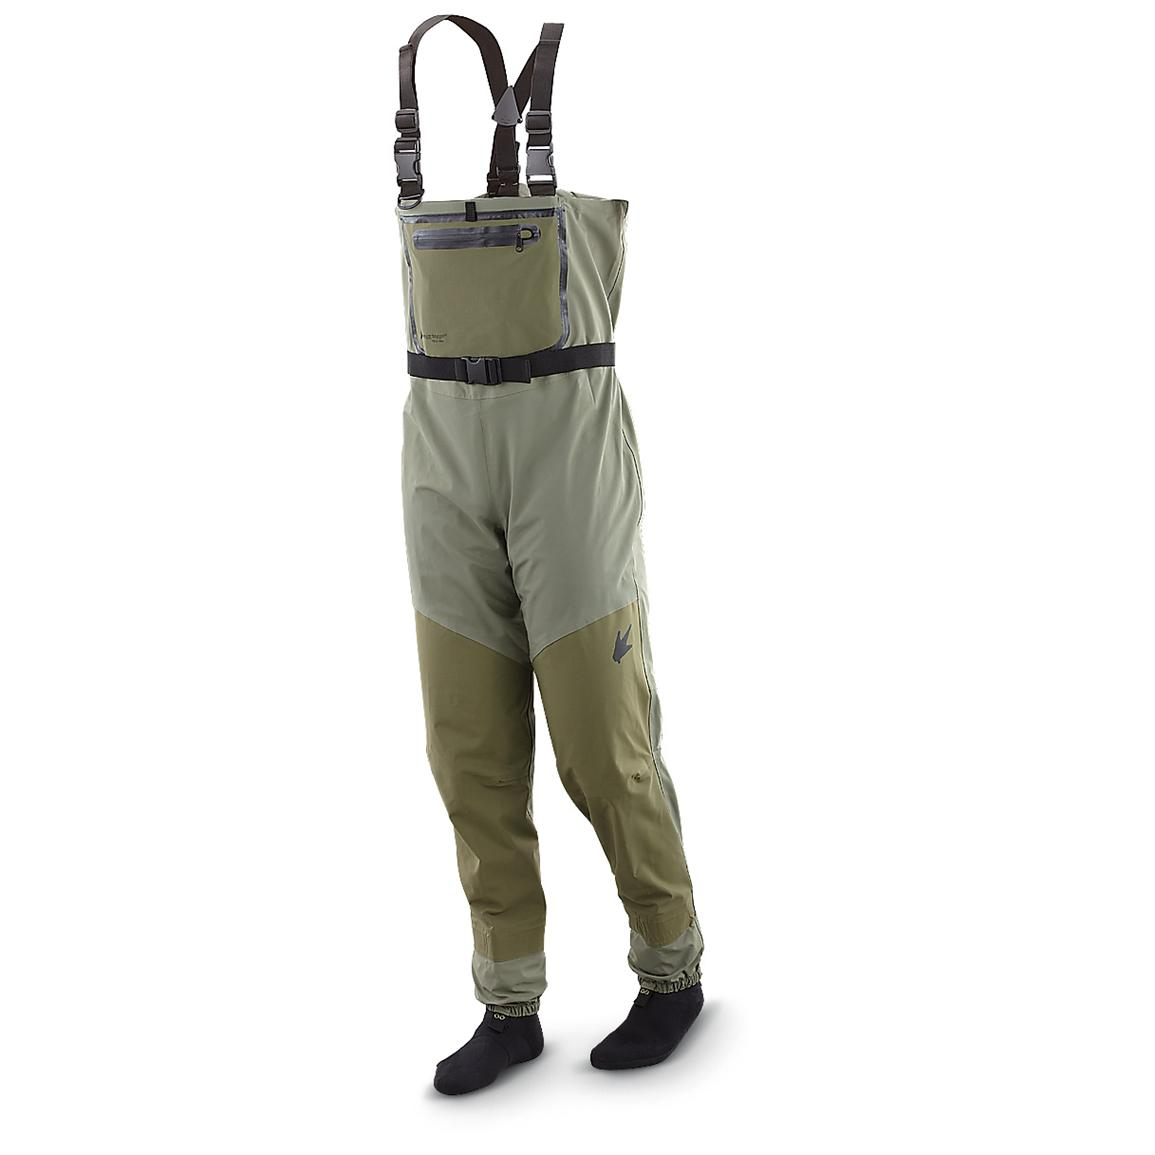 frogg toggs® Anura™ Breathable Stocking Foot Waders, Taupe / Sand